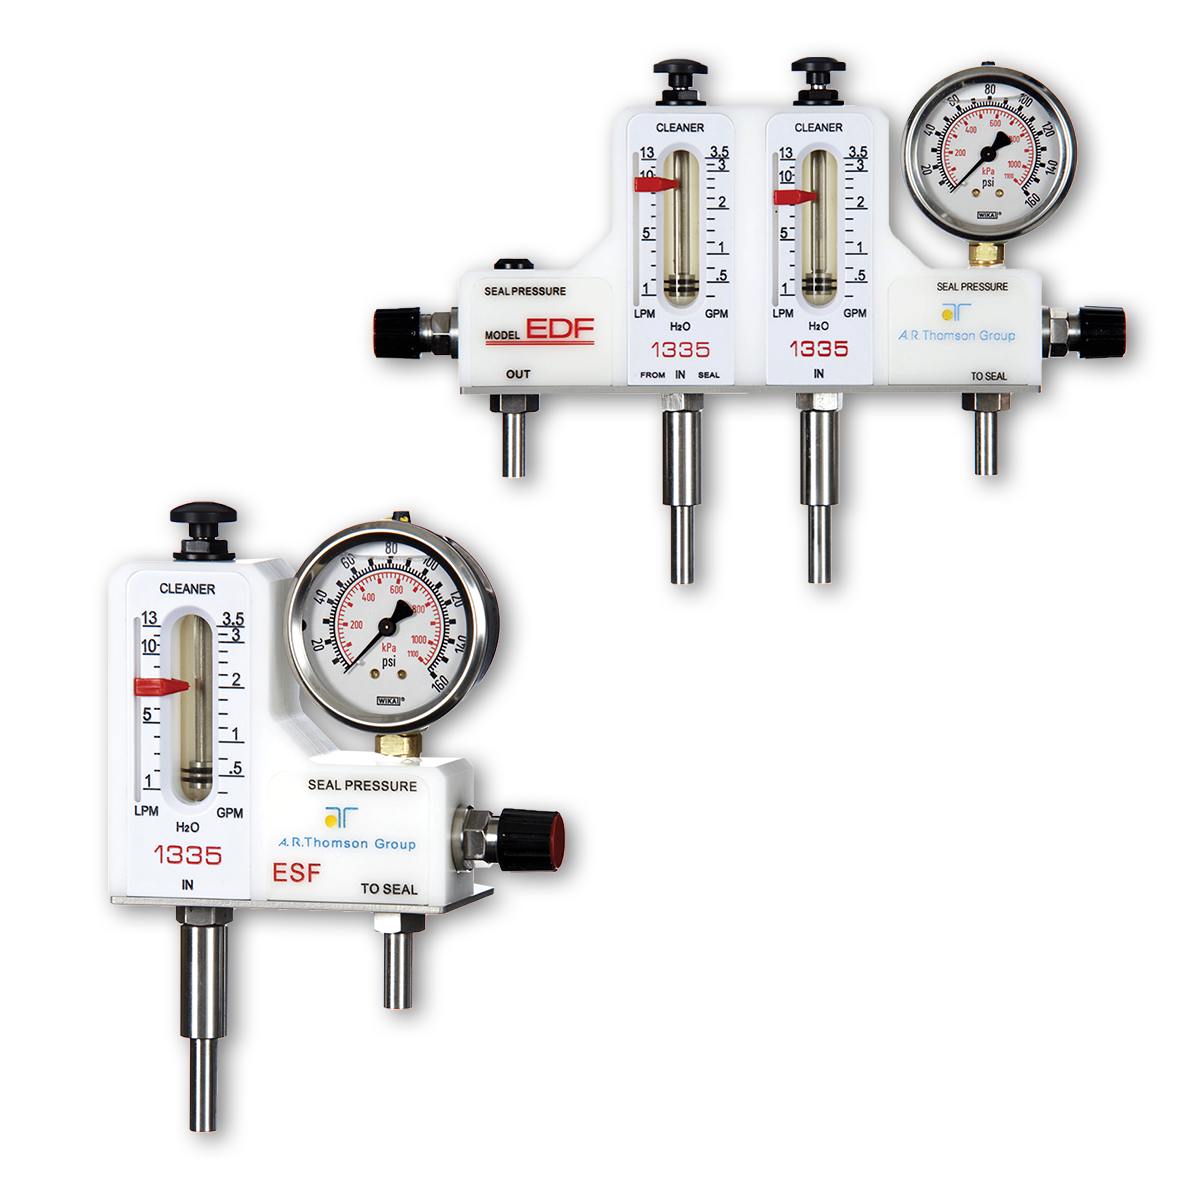 single and dual flow meters for pumps